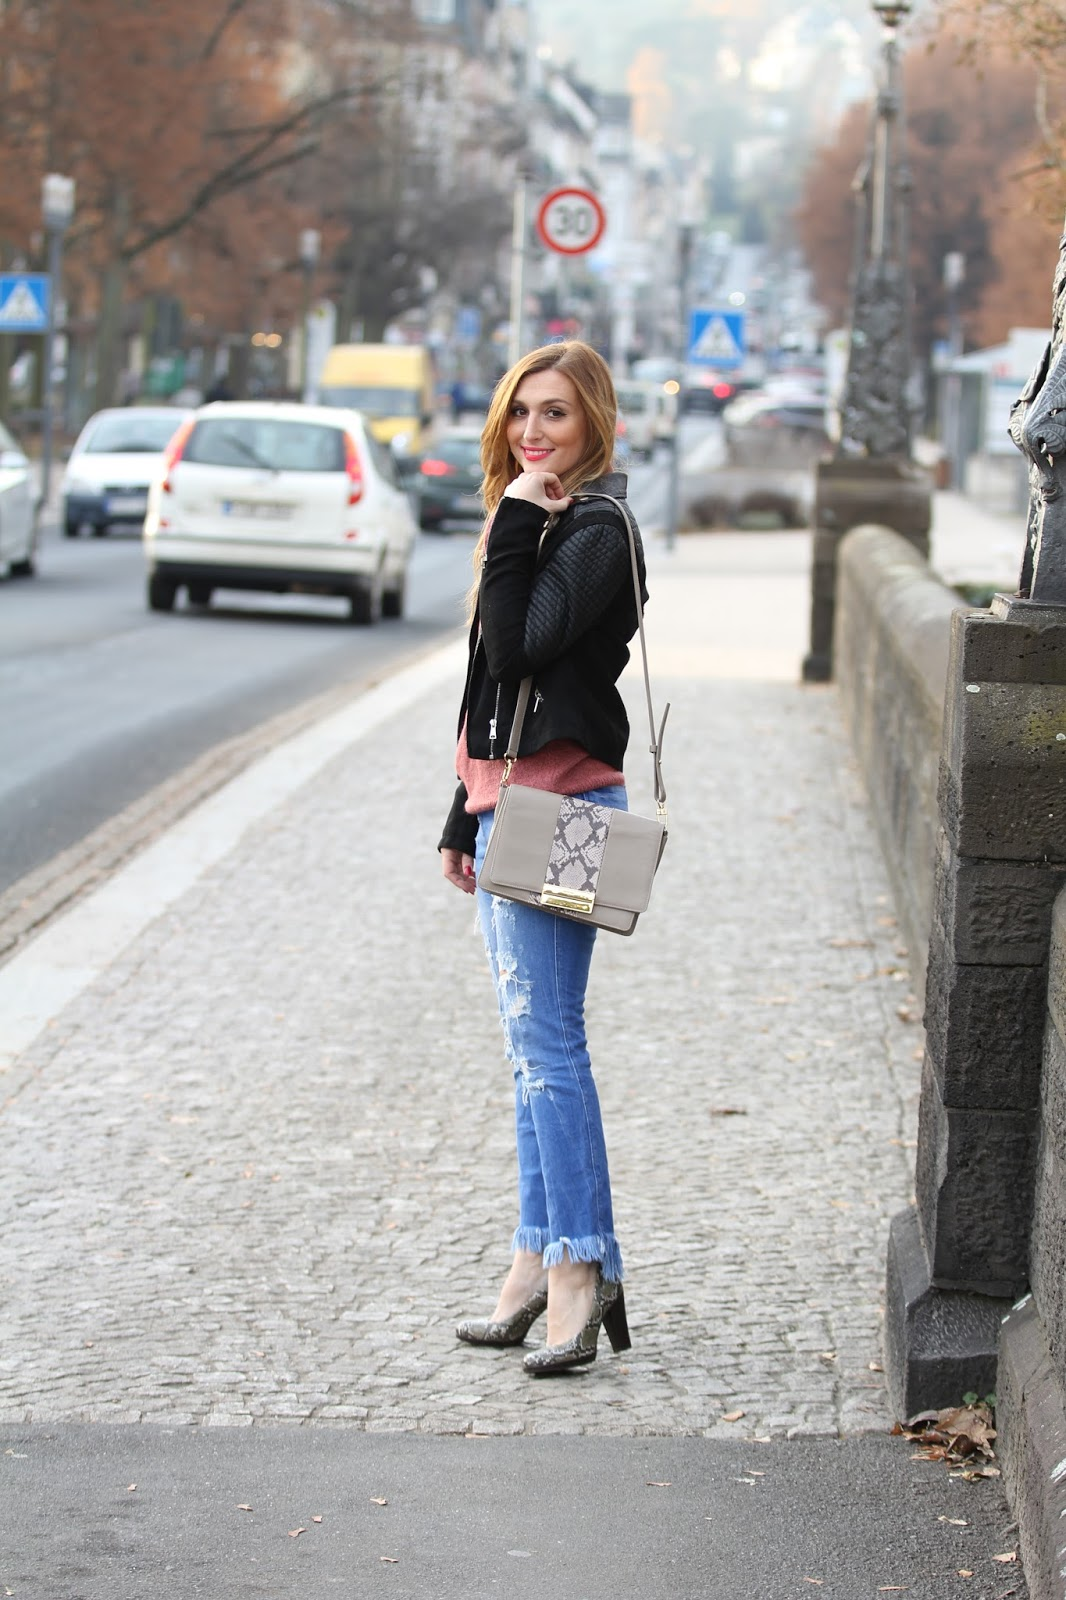 Fashionstylebyjohanna-undone-Look-Ripped-Jeans-Lederjacke-winter-winterfashion-streetsylefashion.